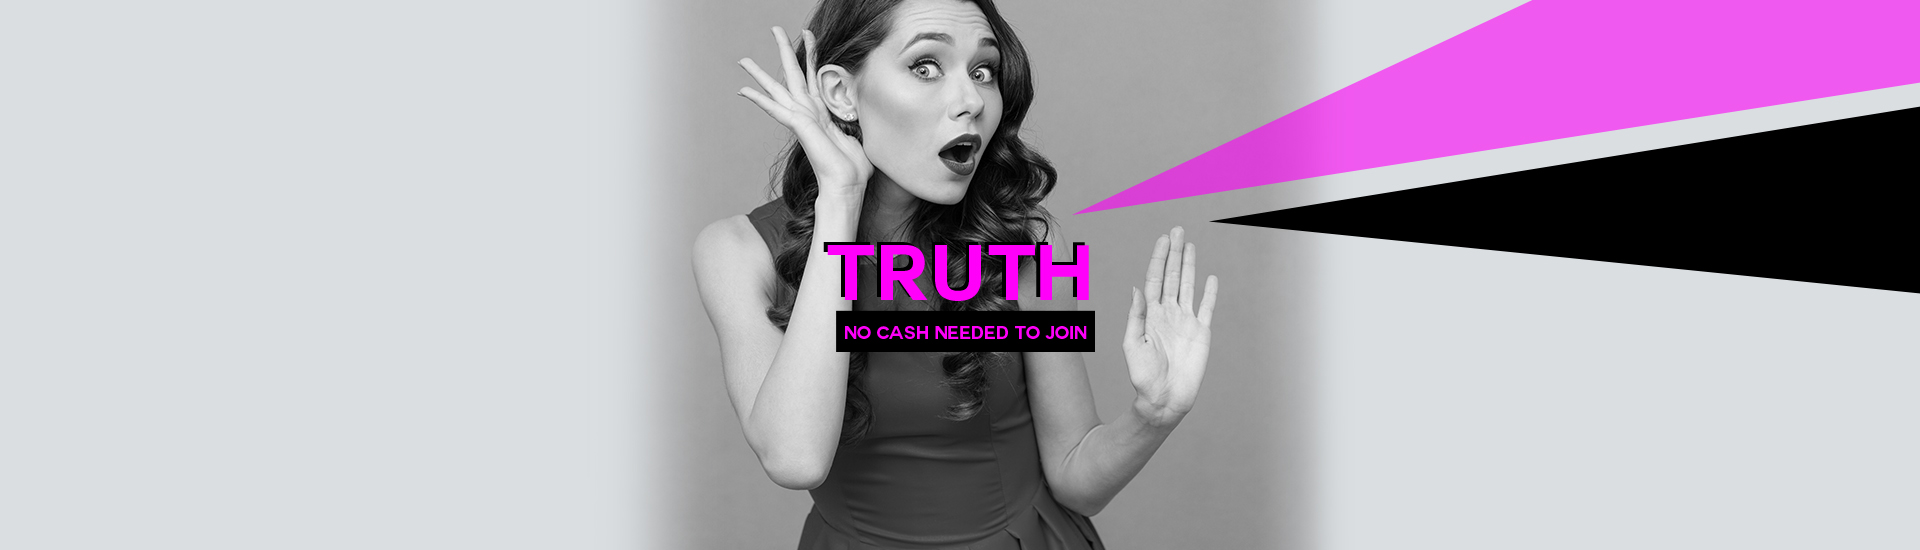 no-cash-needed-to-join-pink-girl-ear